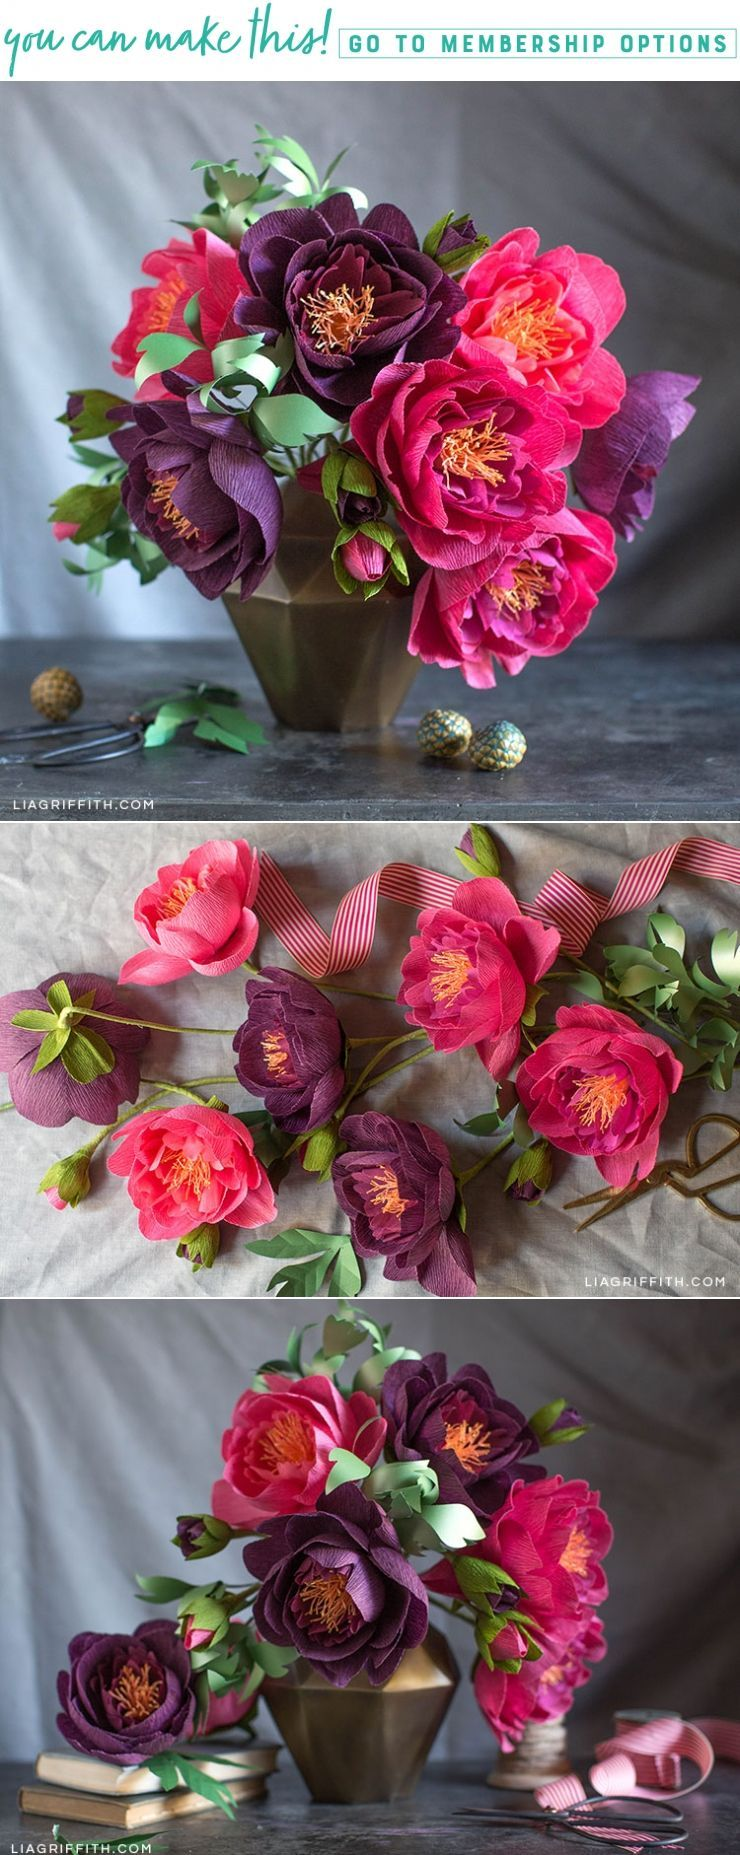 Video Tutorial How to Make Crepe Paper Peonies How to Make Crepe Paper Peonies  Lia Griffith Adult DIY crafts are so much fun Lia makes learning how to craft this peony f...